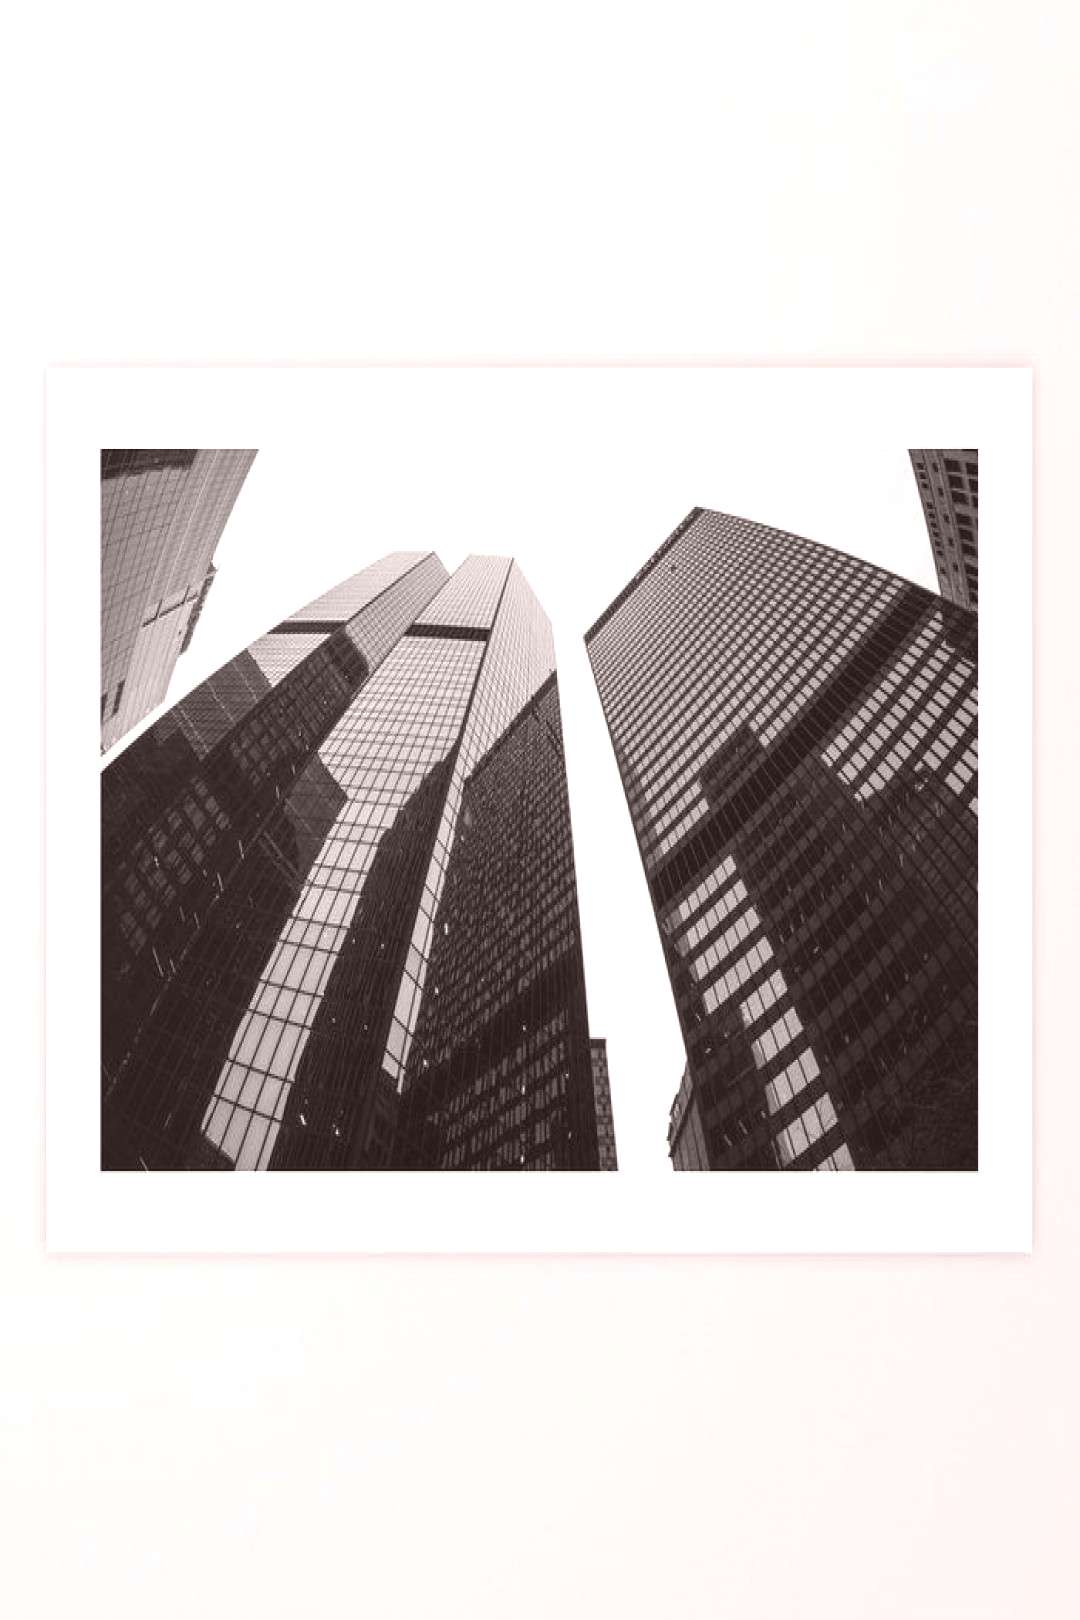 Steel Flex $18.99 Pittsburgh Skyscrapers in black and white.